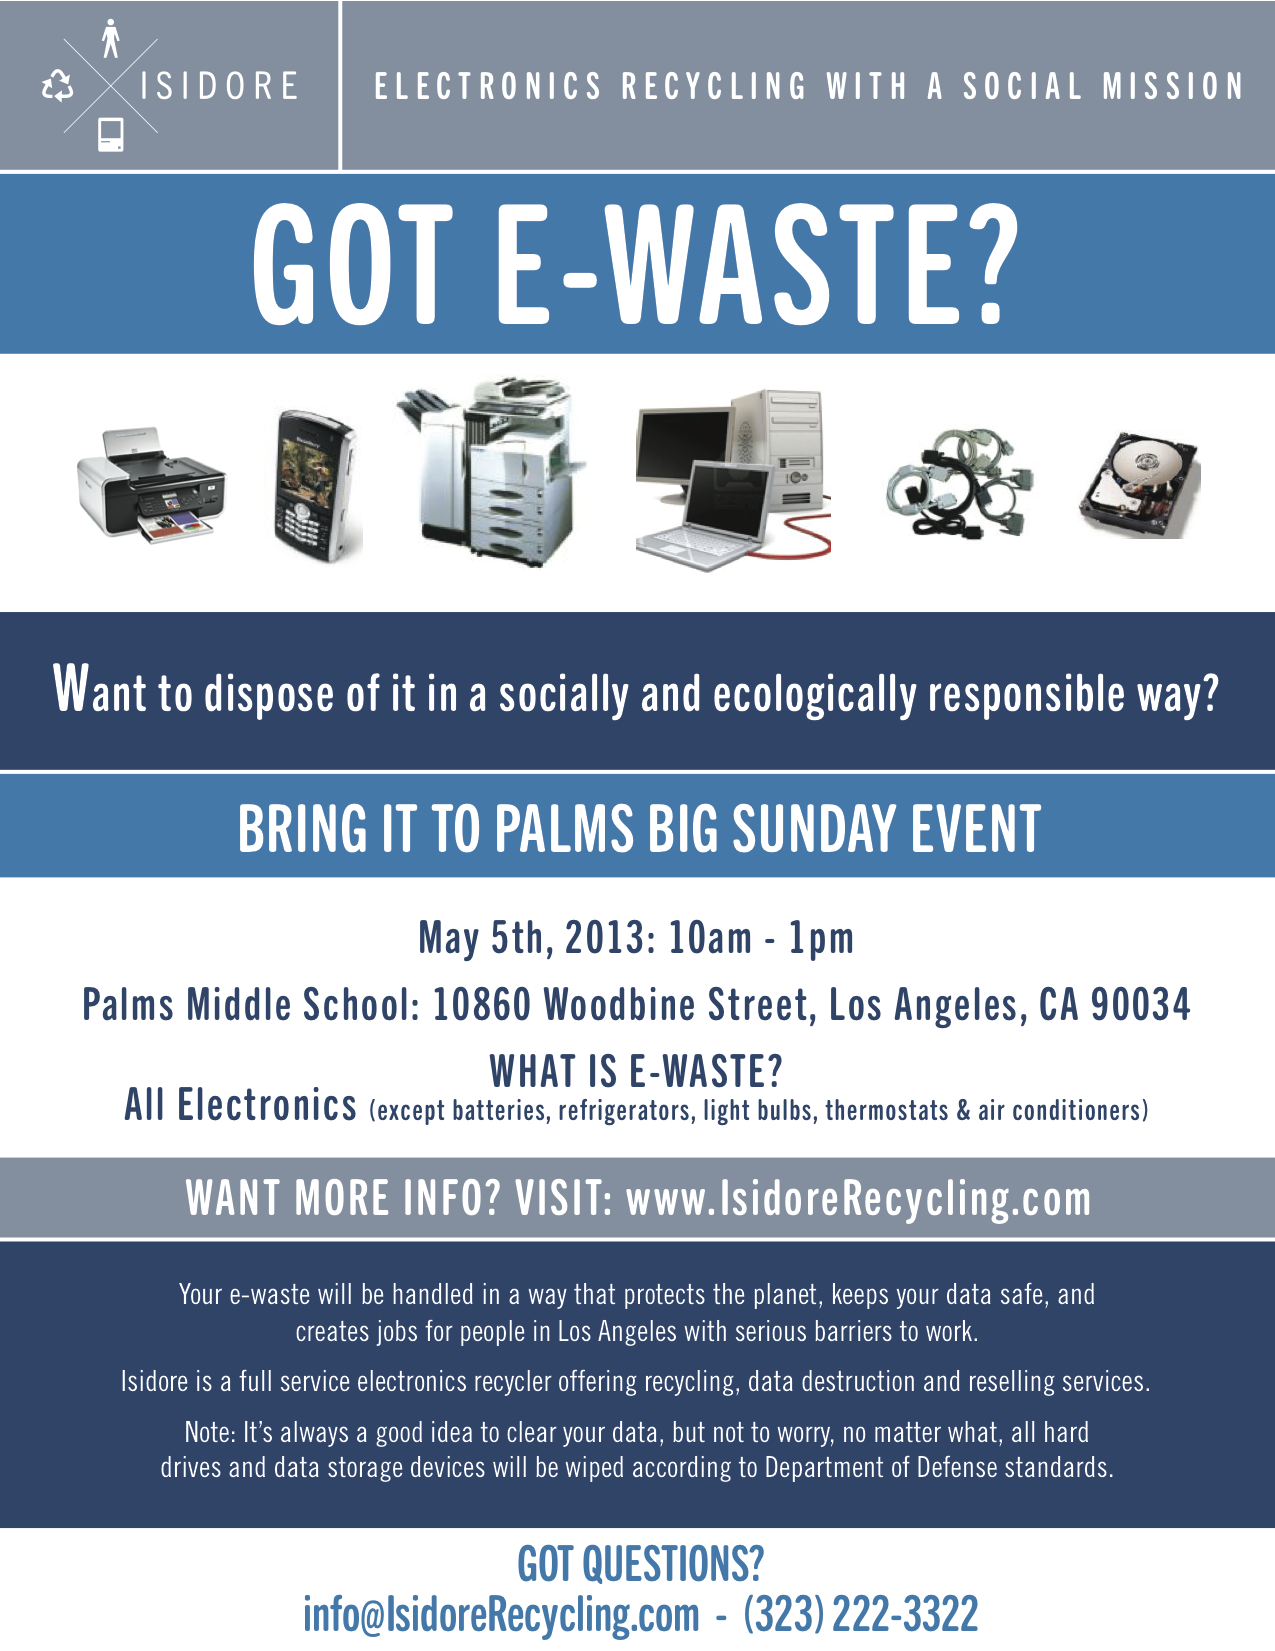 Palms_Big_Sunday_Ewaste_Collection_Flyer.png